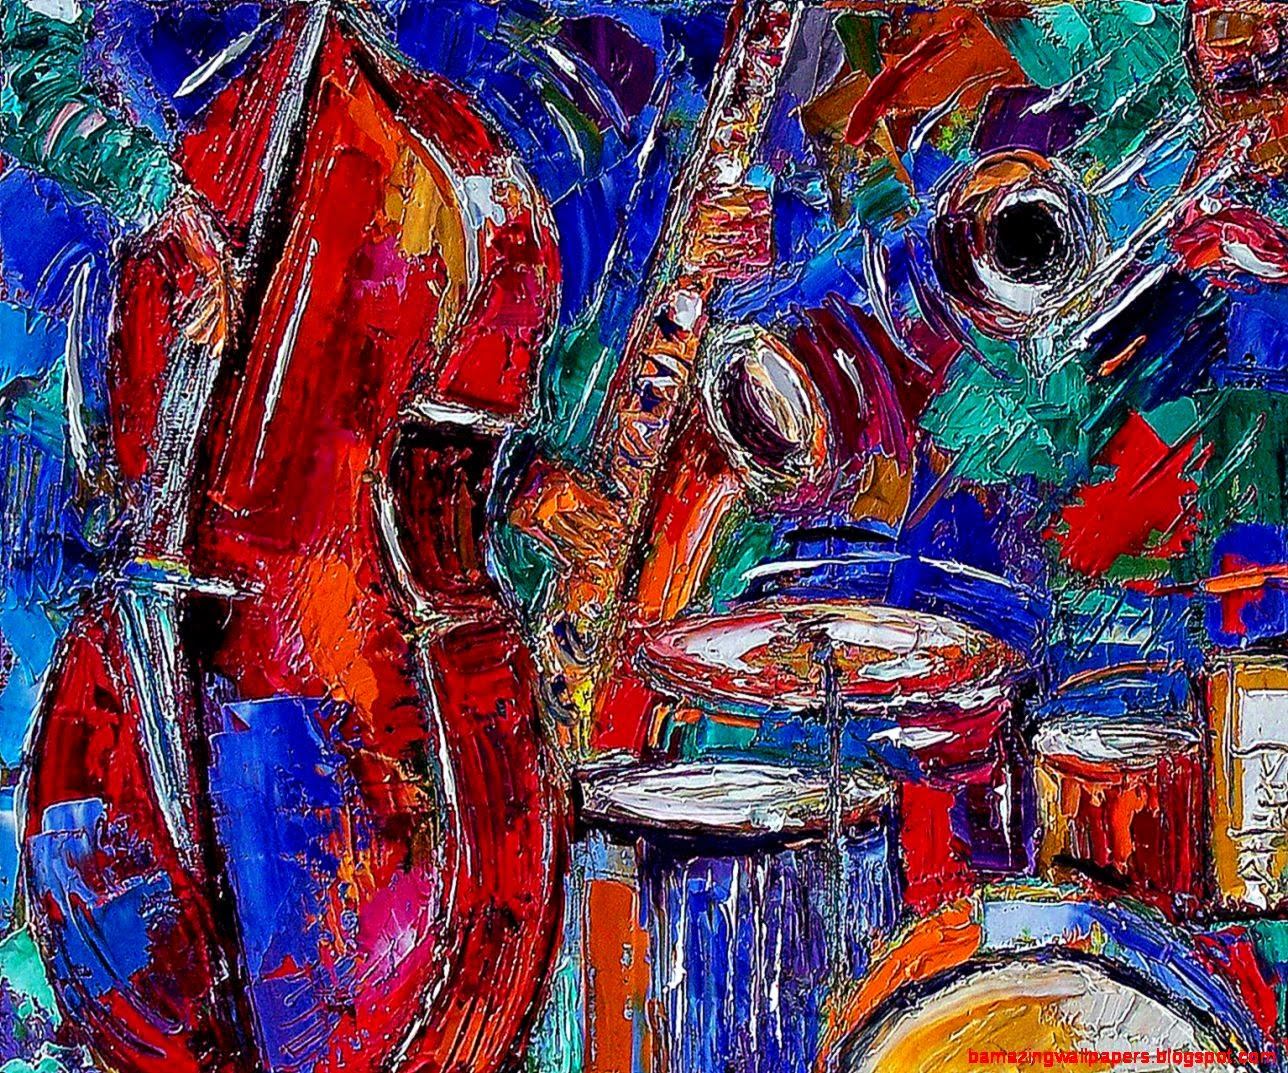 Abstract Art Paintings Music Pictures 5 HD Wallpapers  aduphoto